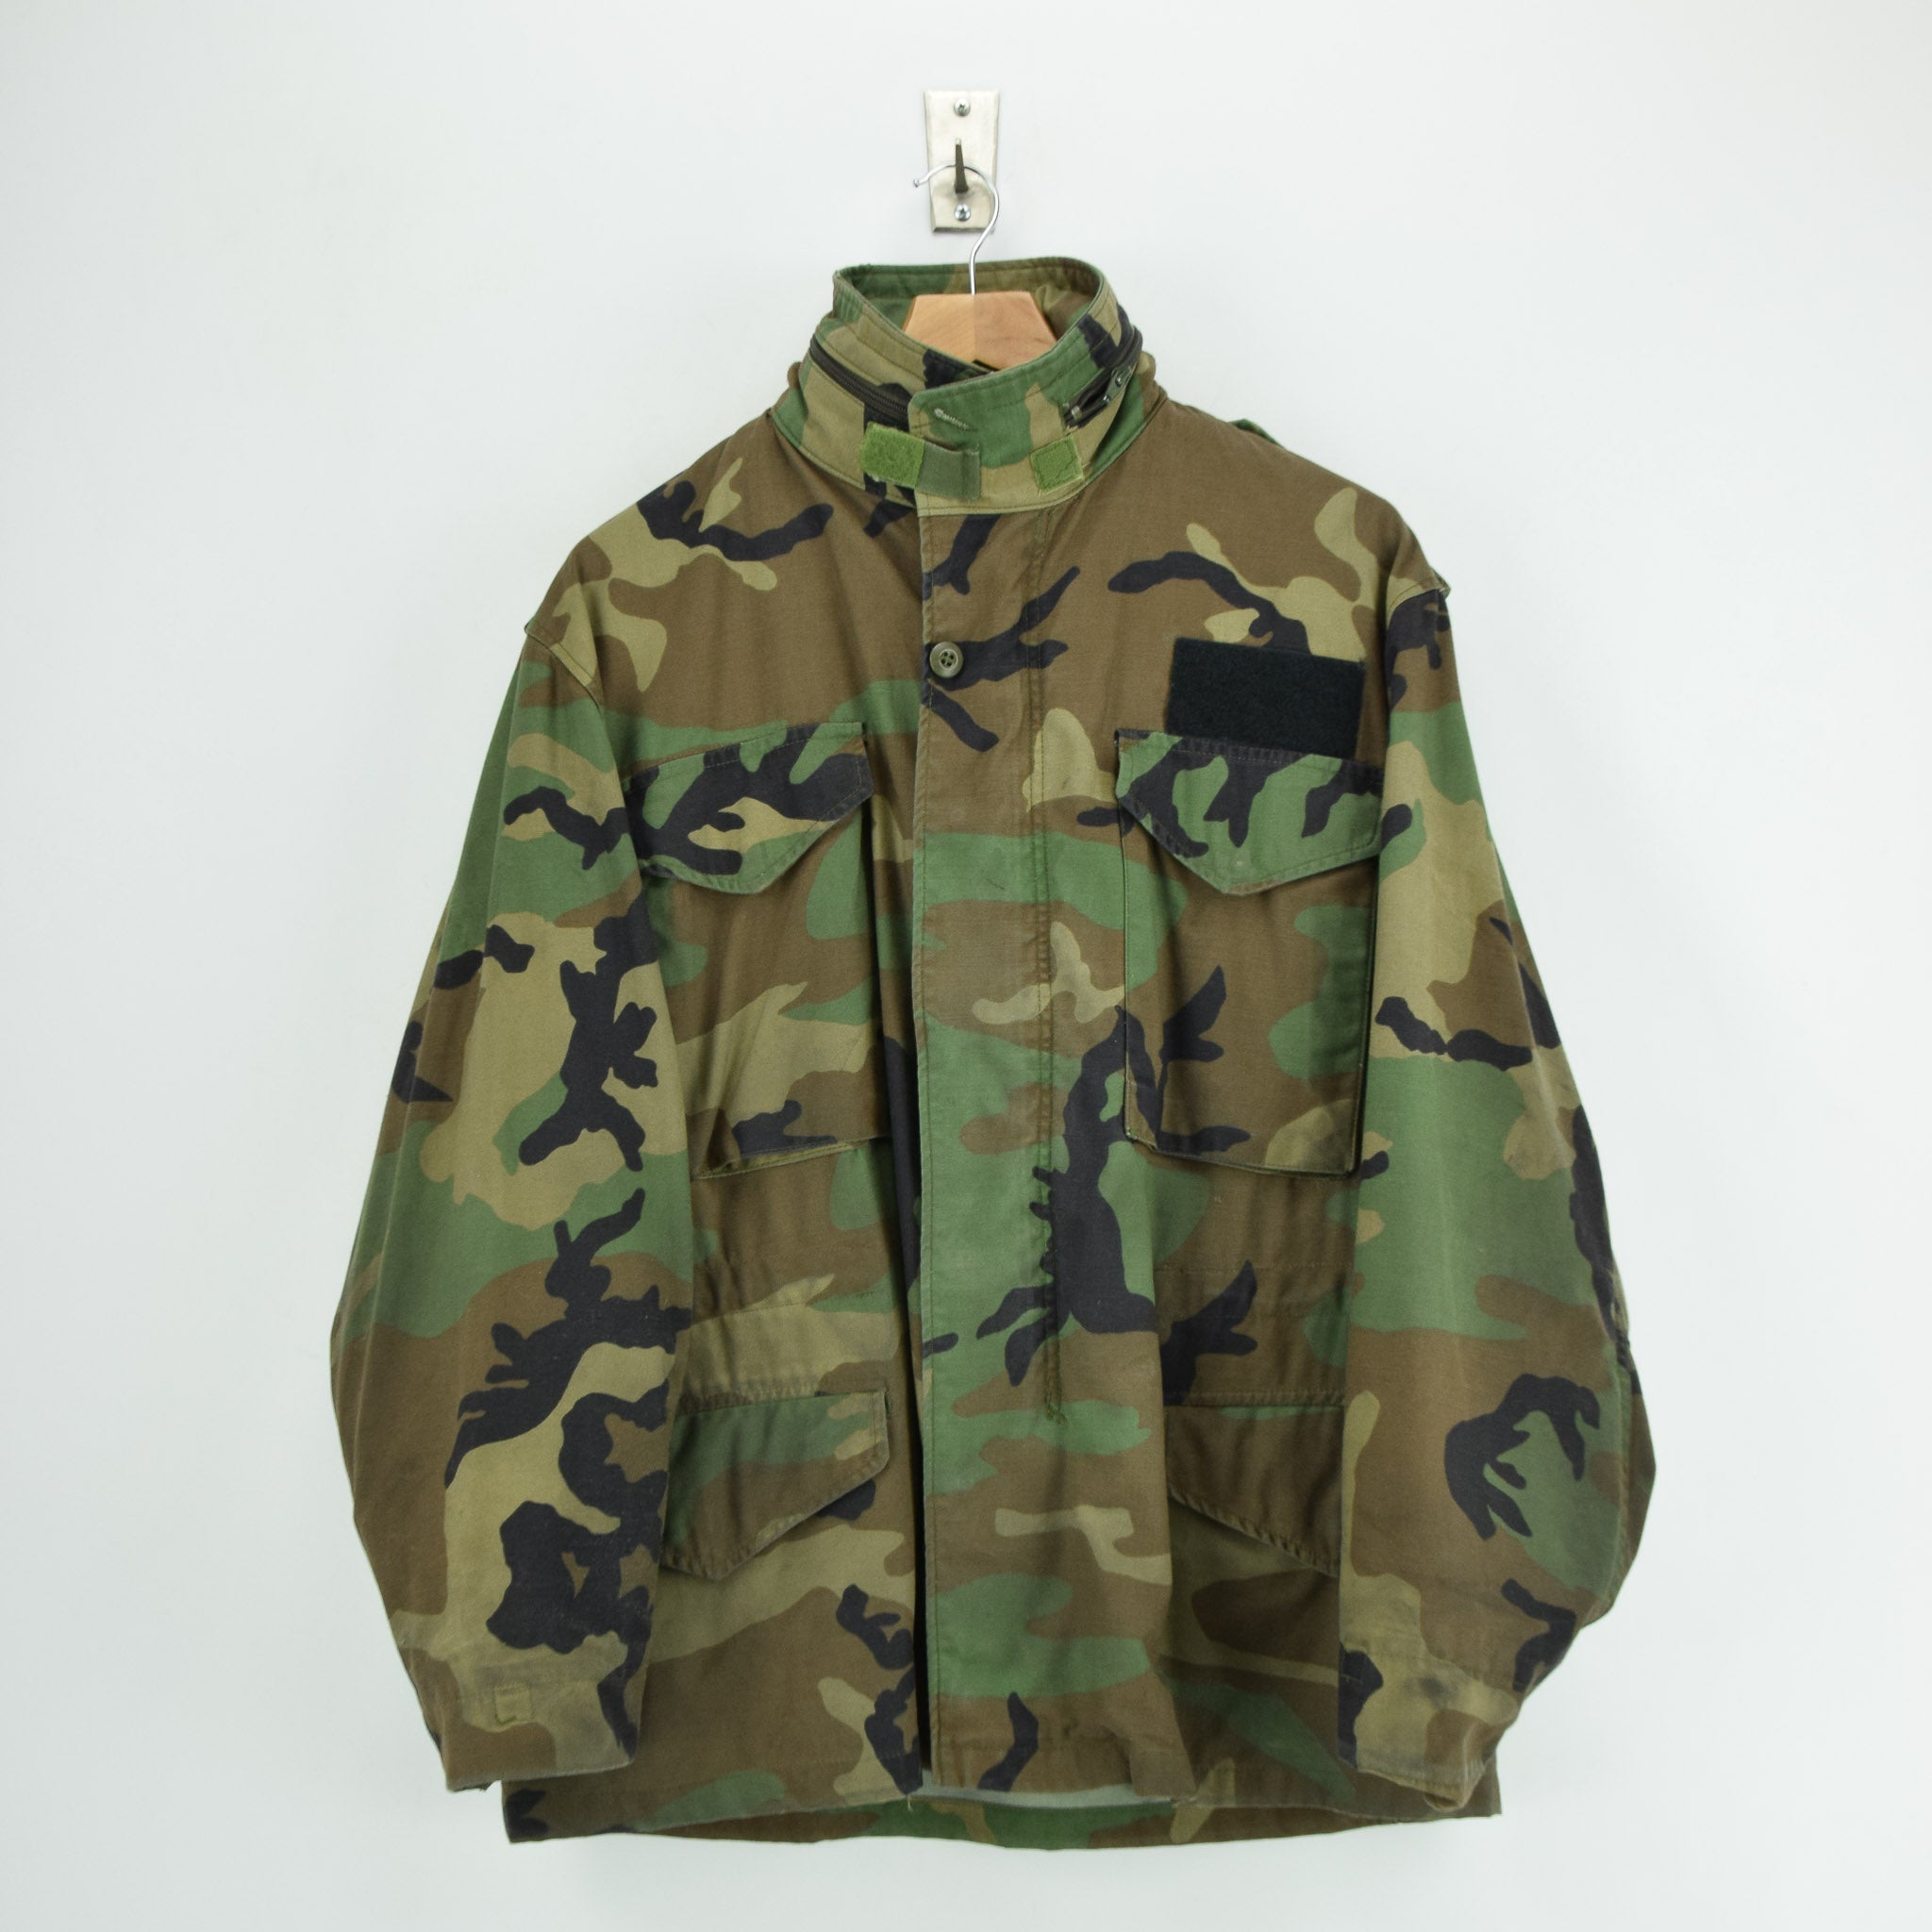 Vintage 80s M-65 Woodland Camouflage Field Coat Alpha Industries Army Jacket M front